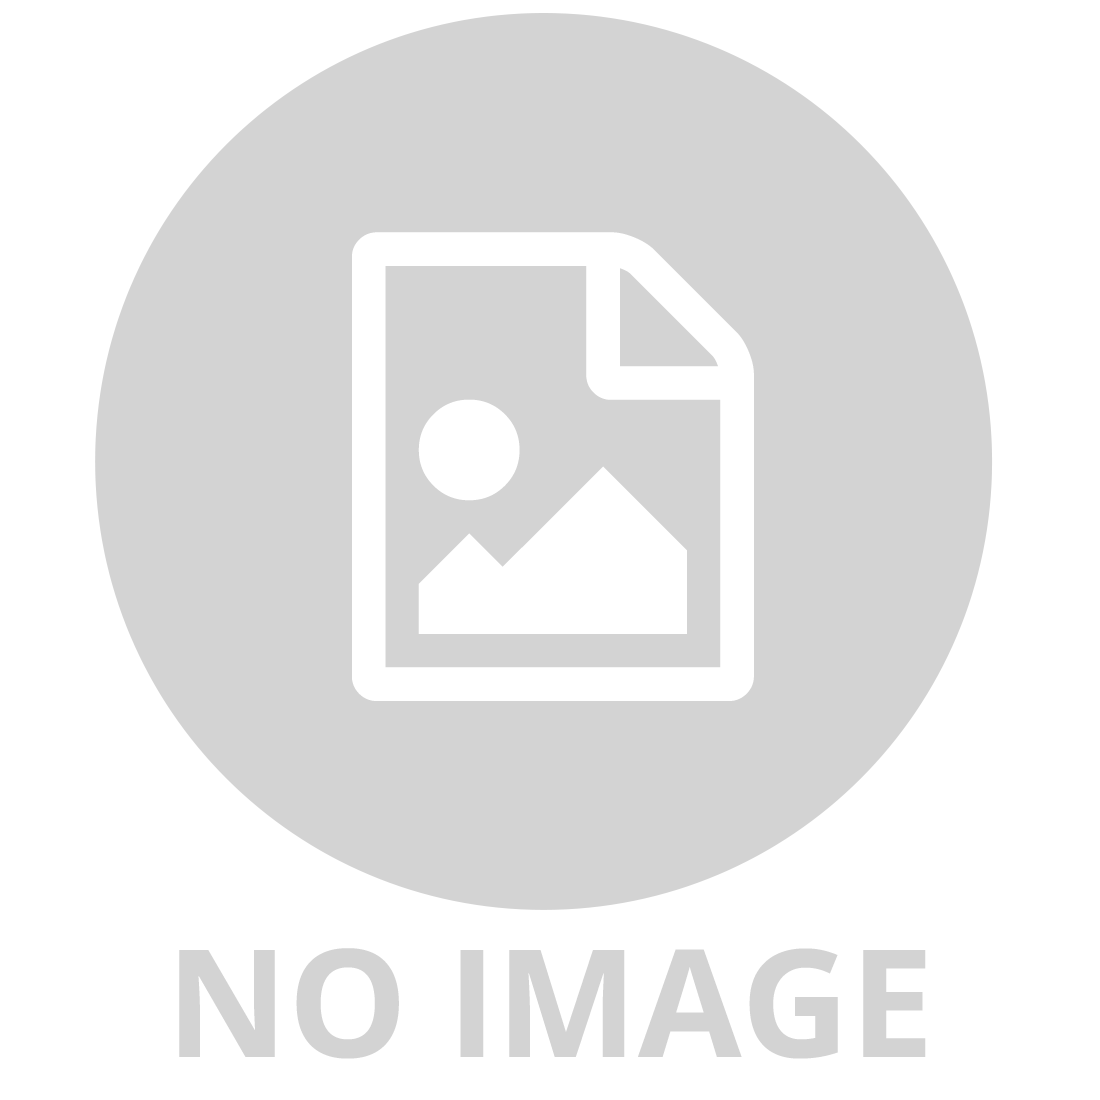 DISNEY PIXAR CARS - NATALIE CERTAIN